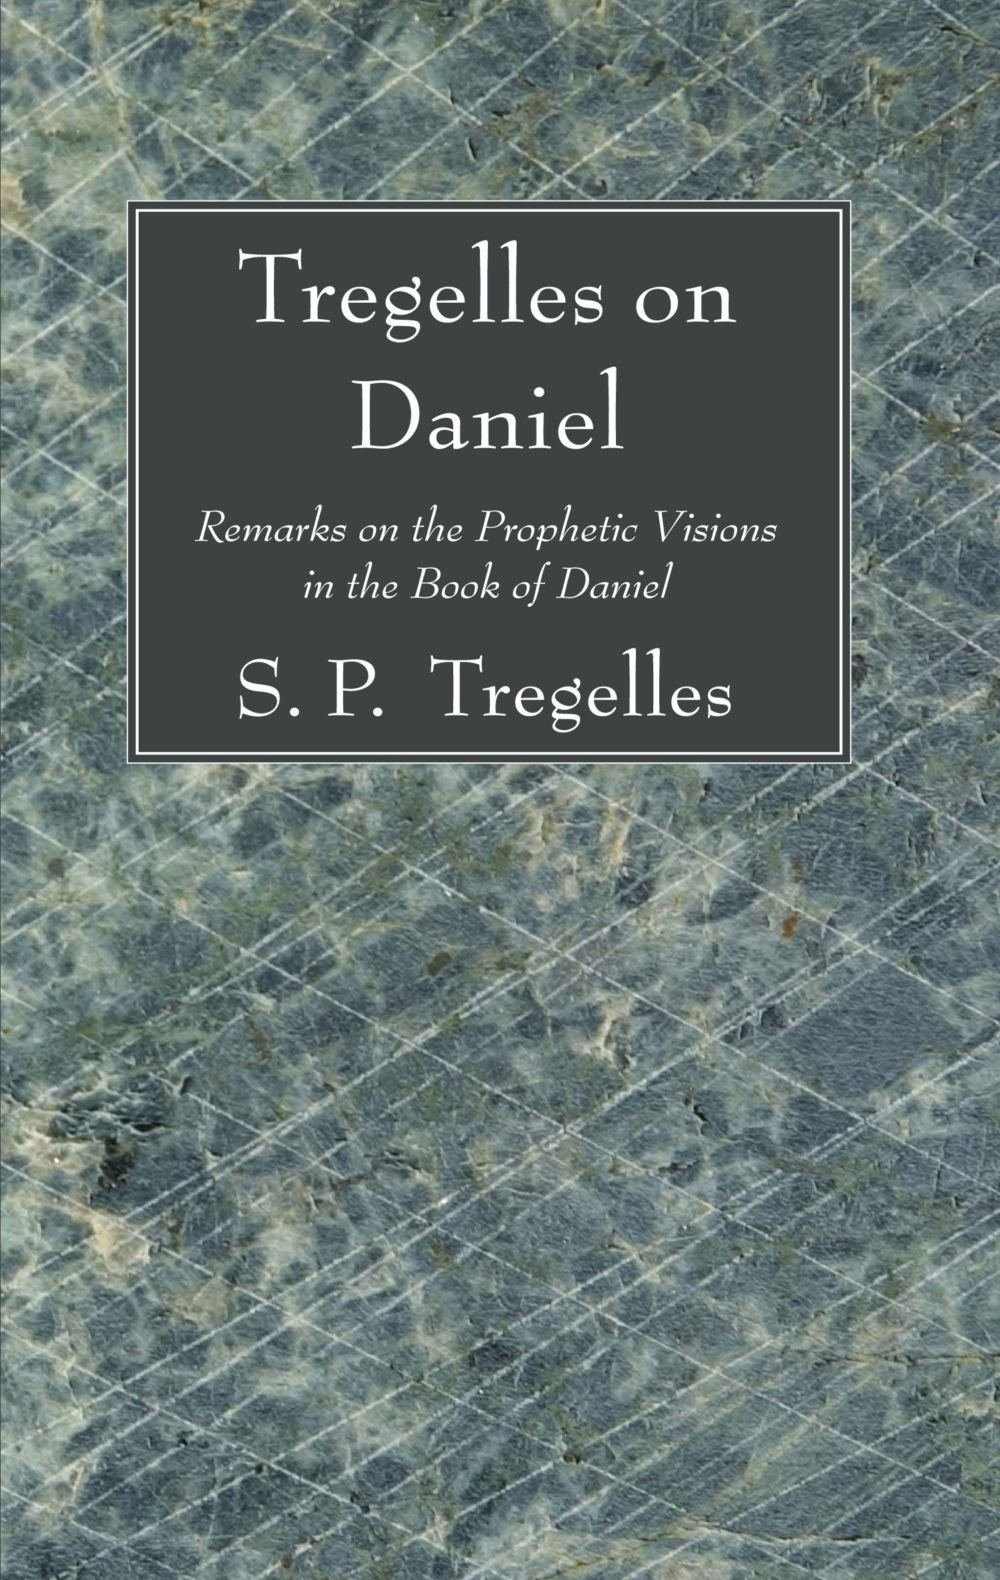 Download Tregelles on Daniel: Remarks on the Prophetic Visions in the Book of Daniel PDF